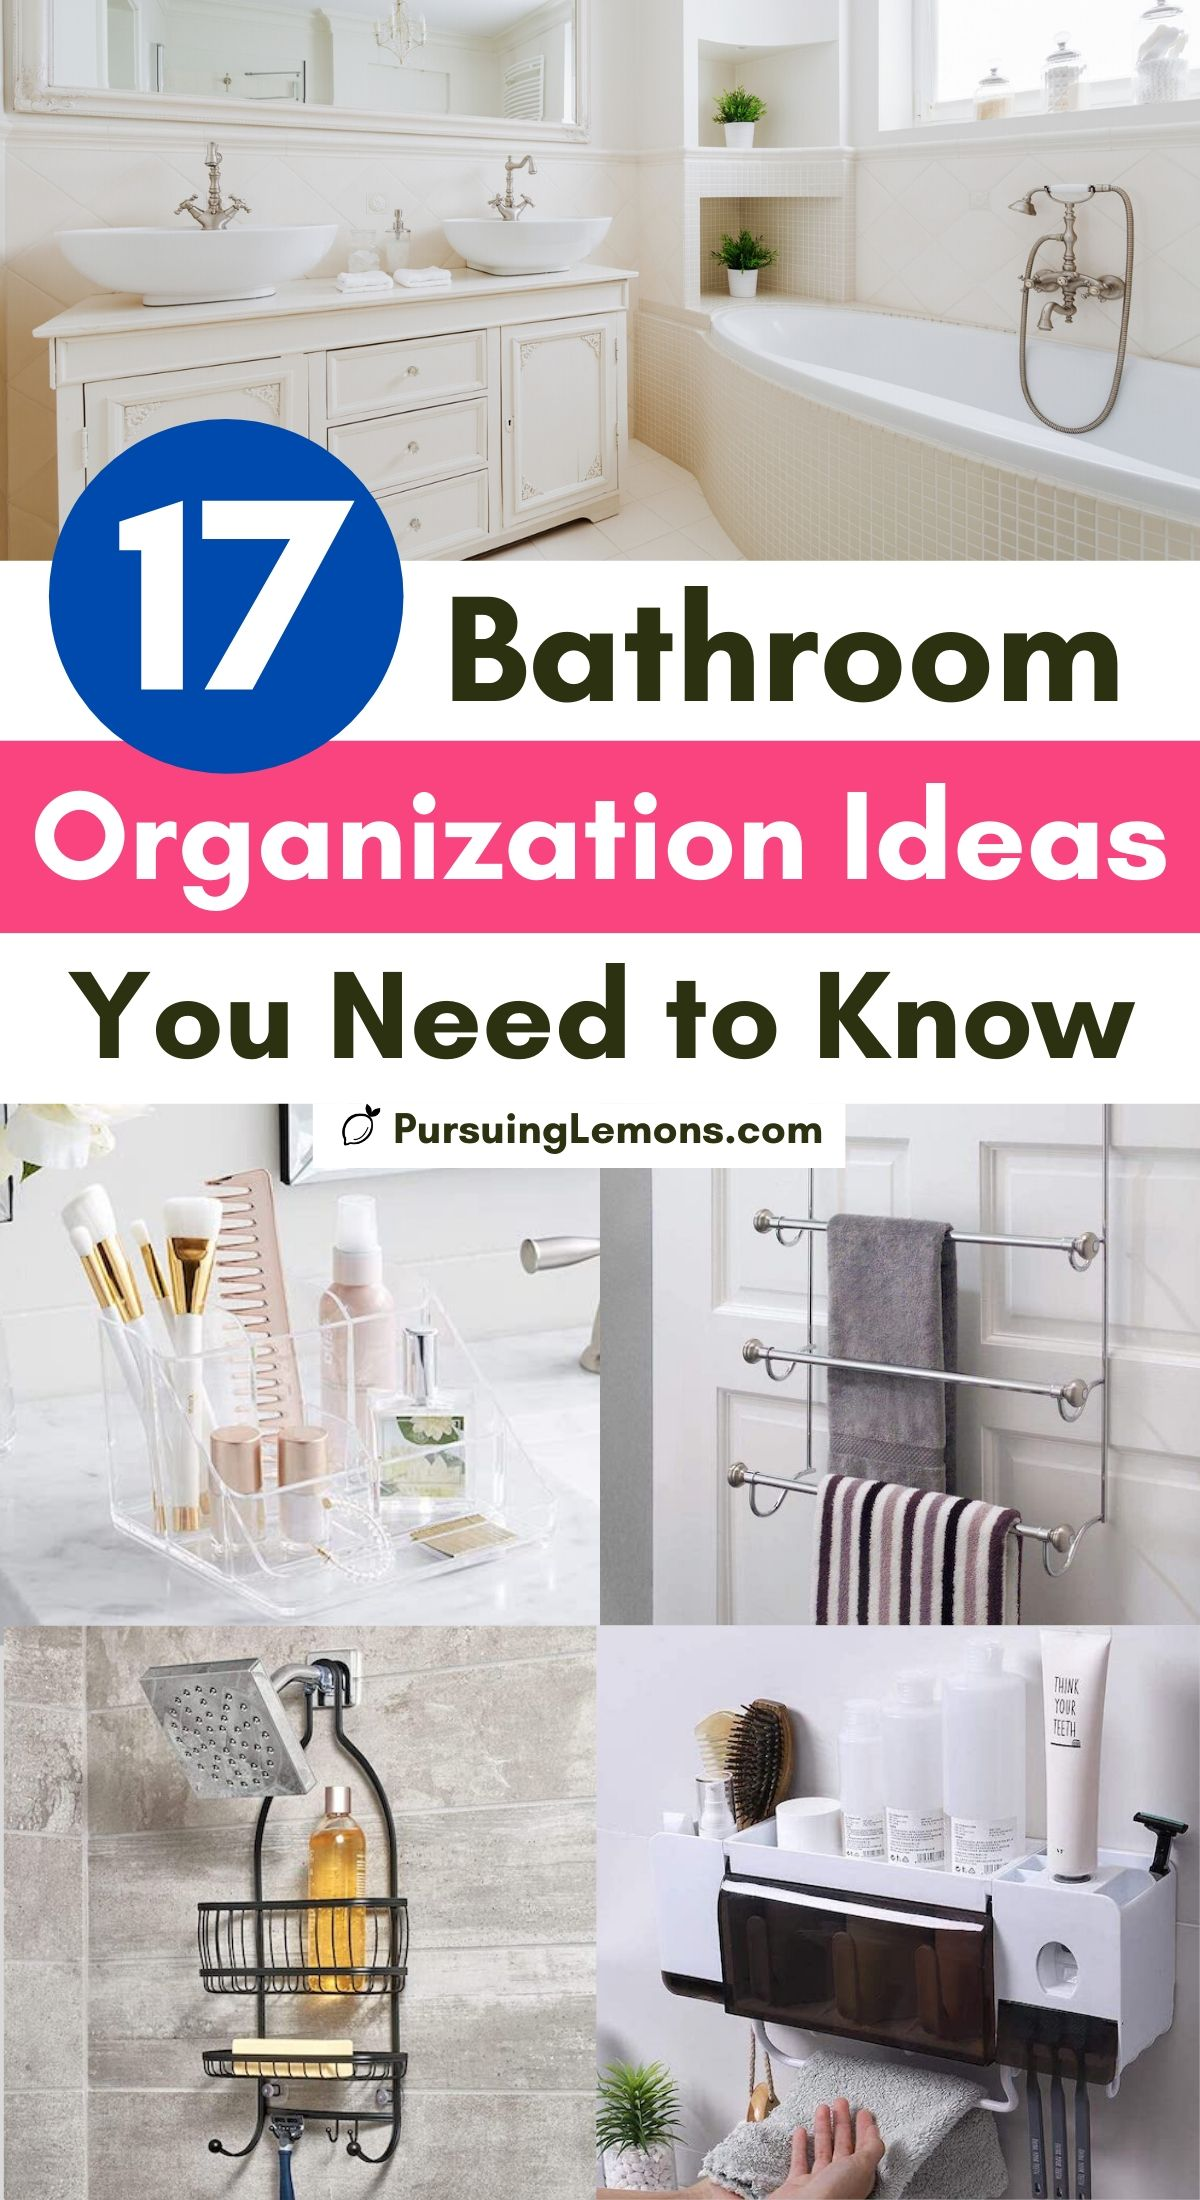 17 Bathroom Organization Ideas You Need to Know | Keep your small bathroom organized with these bathroom organization hacks. You can start organizing the bathroom with these organizing ideas for bathrooms. If you want to know how to organize a bathroom, you can start with these bathroom organization ideas storage. #bathroomideasdiy #organizingbathroom